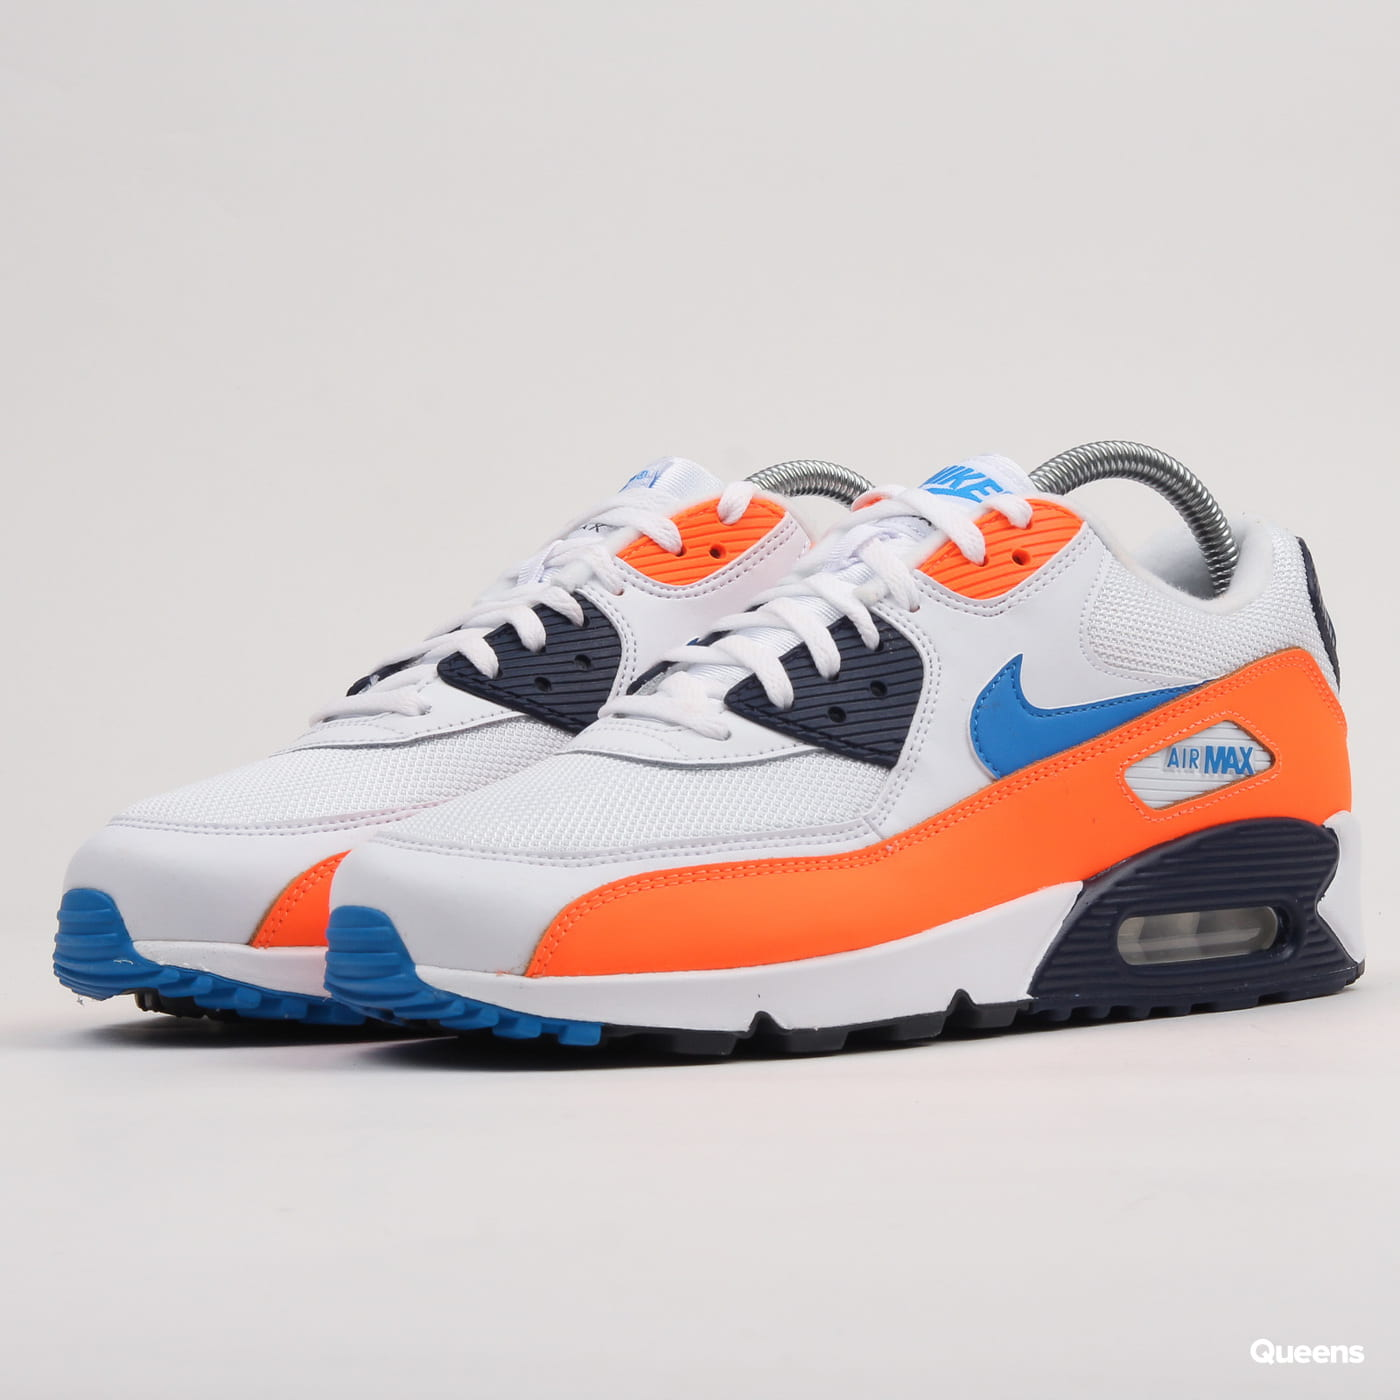 ab0c701af8 Sneakers Nike Air Max 90 Essential white / photo blue - total orange (AJ1285 -104) – Queens 💚